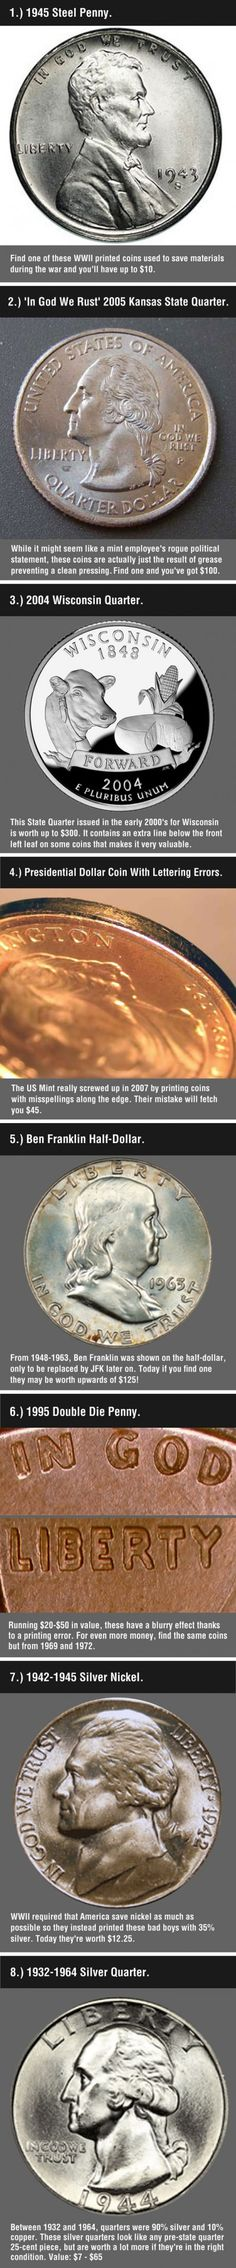 These 8 Valuable Coins May Be Hiding In Your Change